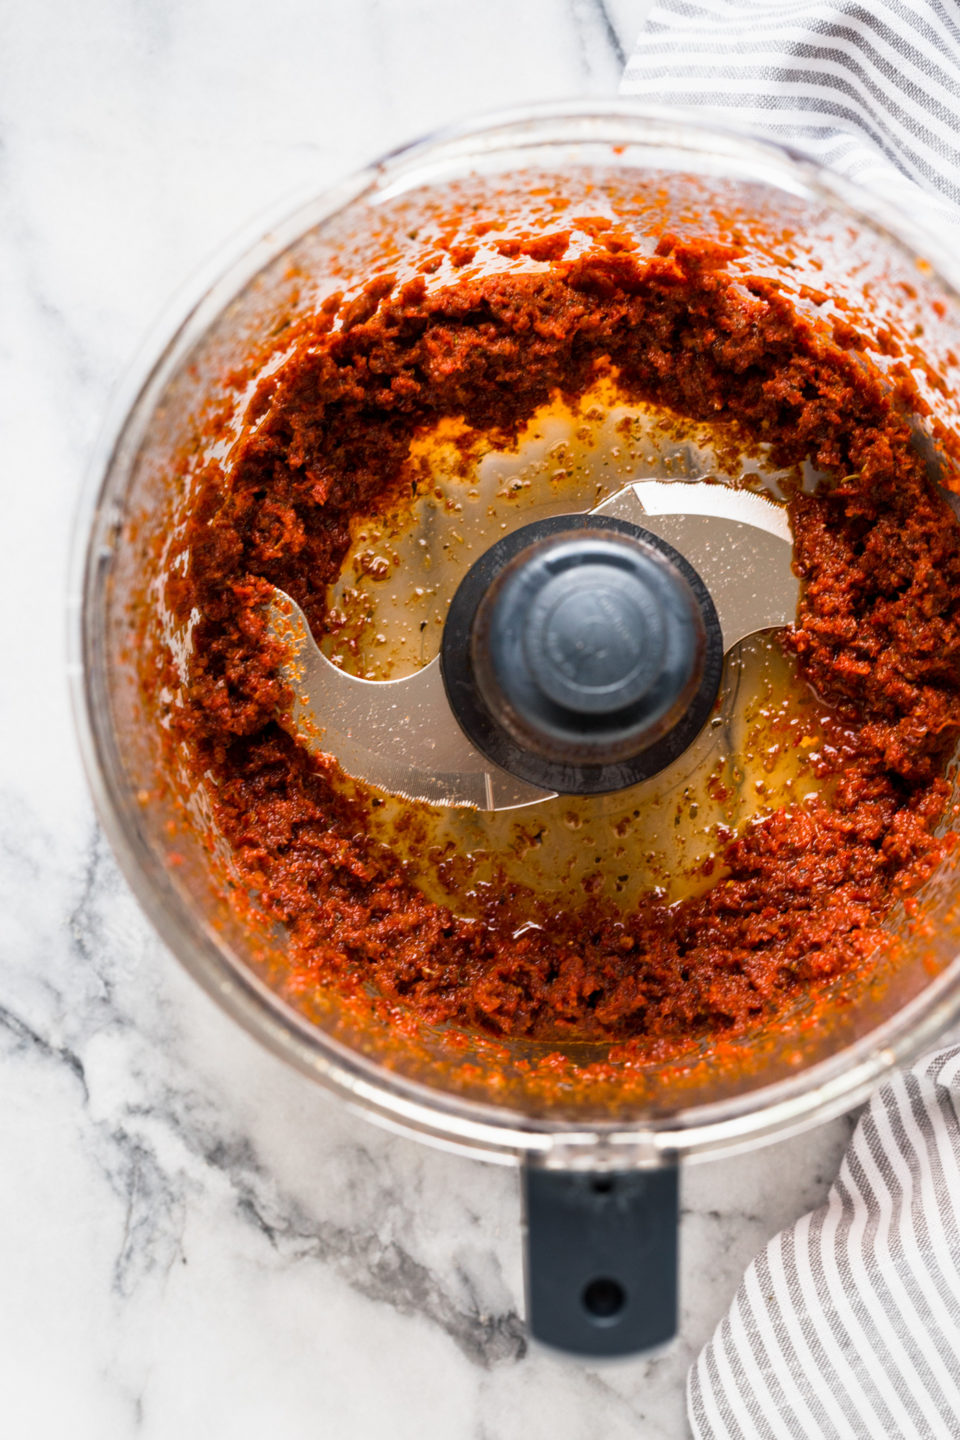 sunddried tomato salad dressing in food processor